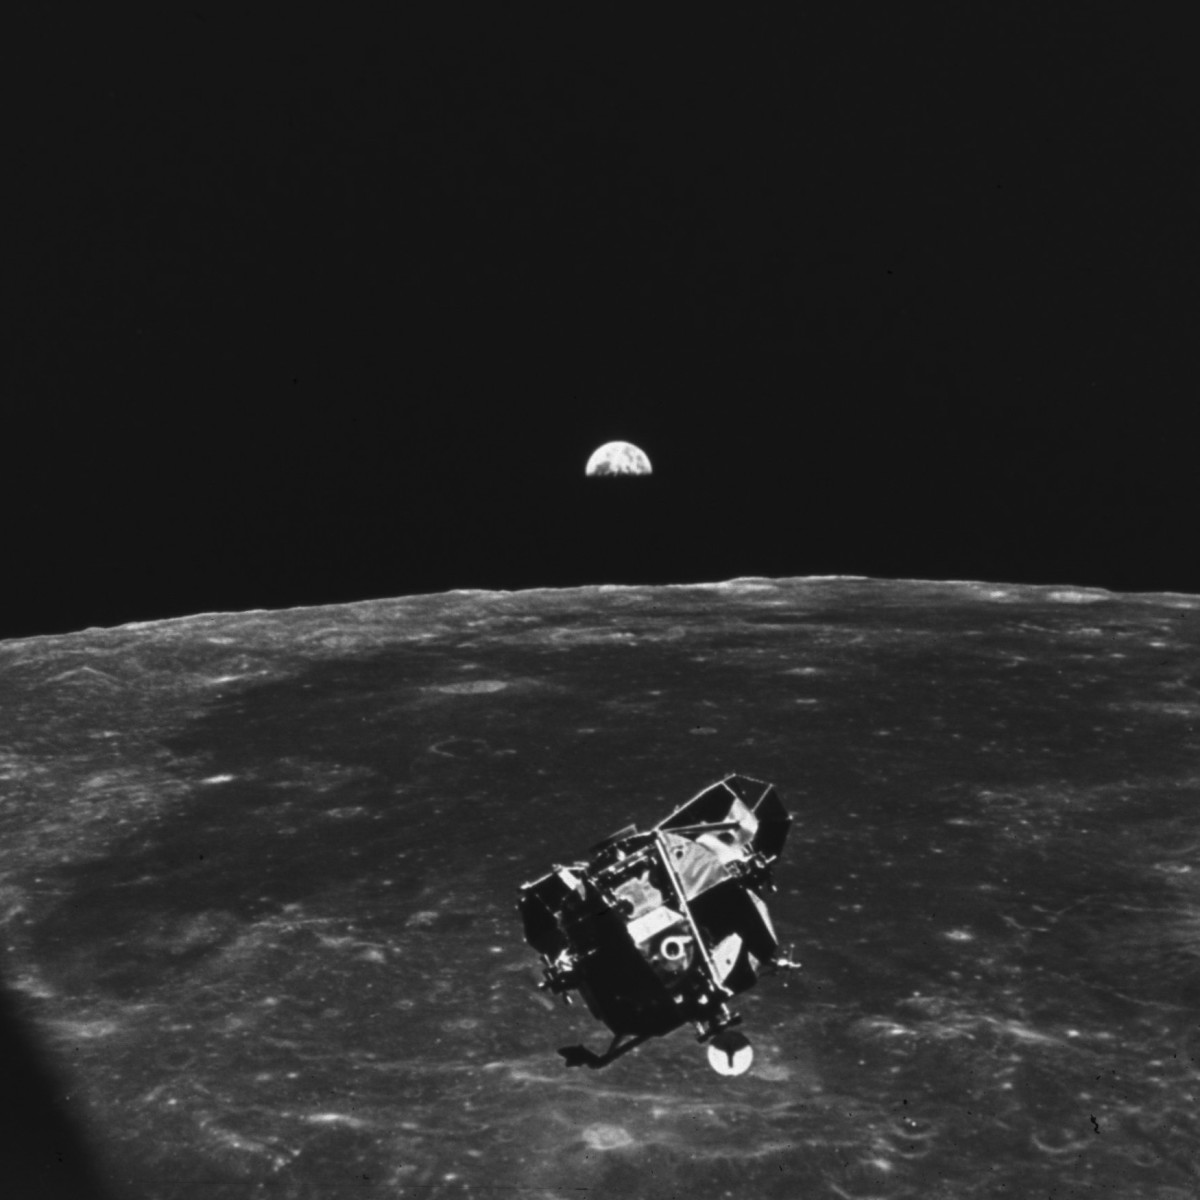 This photo shows the Lunar Module descending toward the surface of the moon after disengaging from the Command Module.